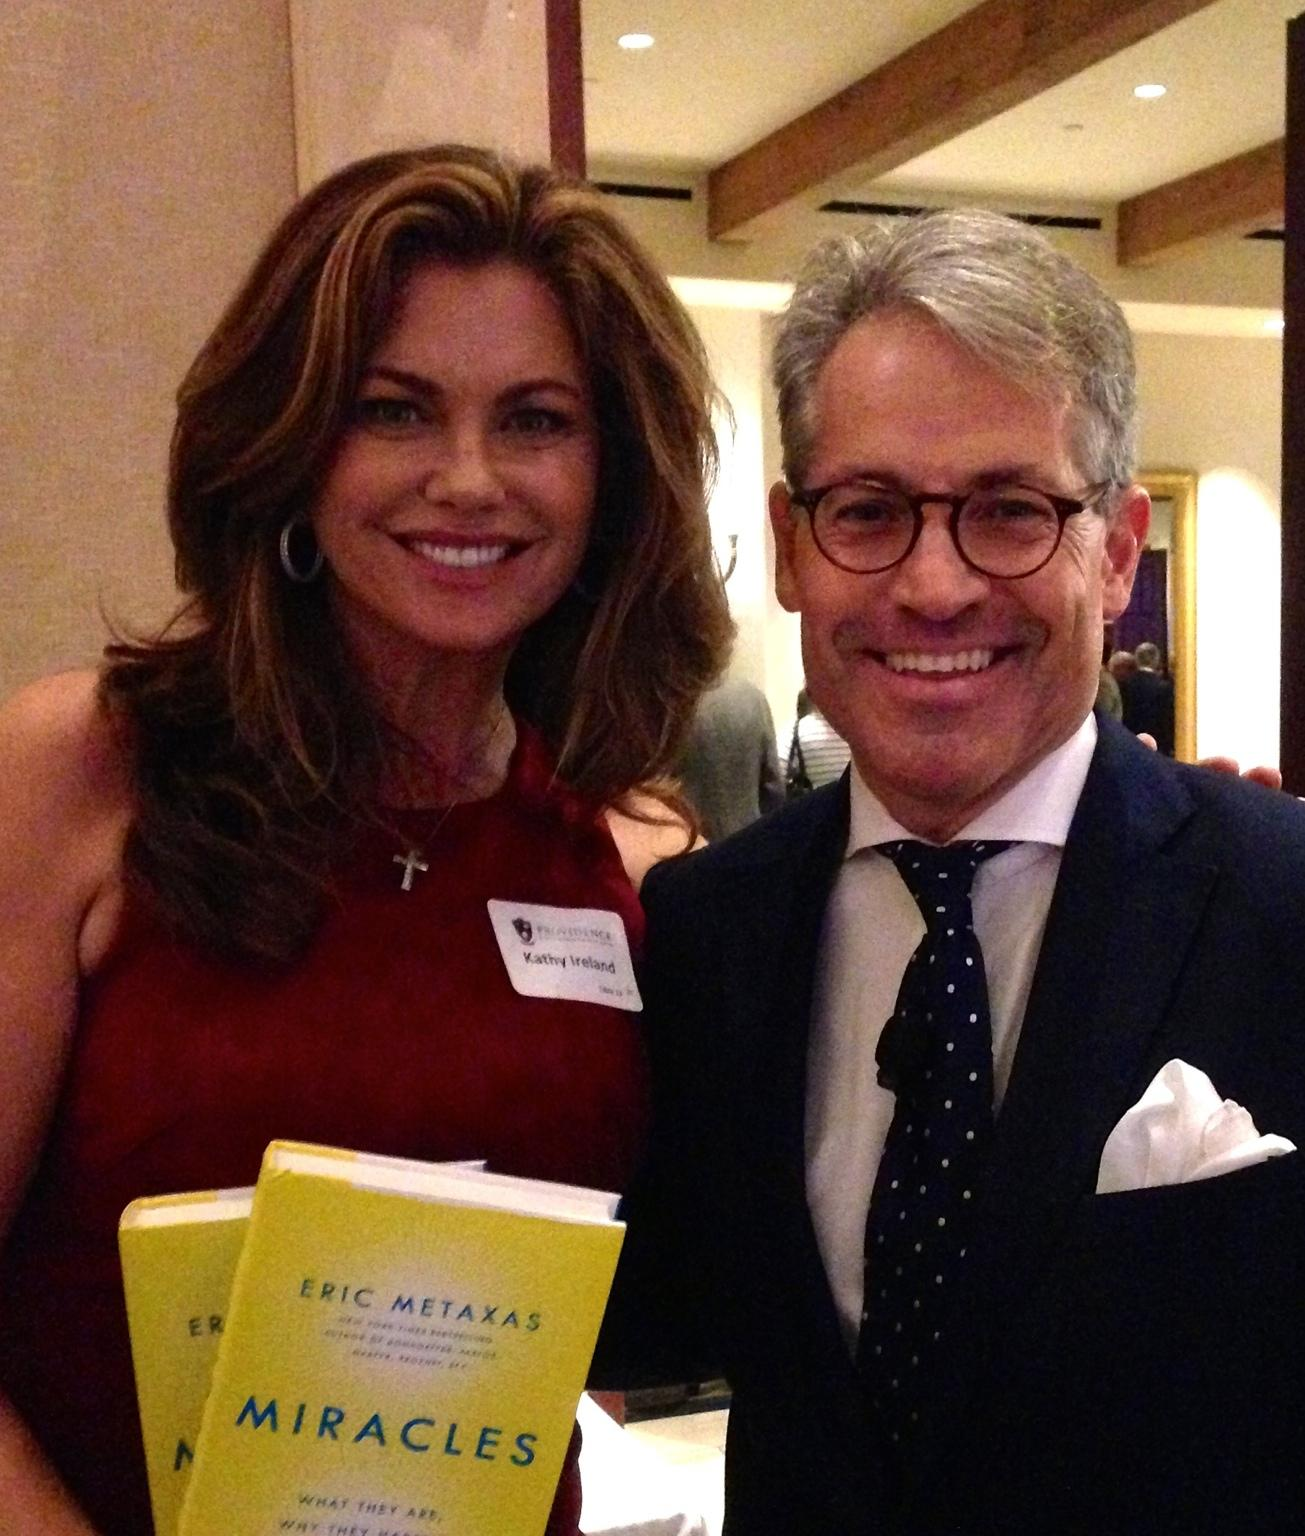 RT @ericmetaxas: Yesterday @HughHewitt interviewed me about @MiraclestheBook for @ProvidenceSB. @KathyIreland is one of the trustees! http:…